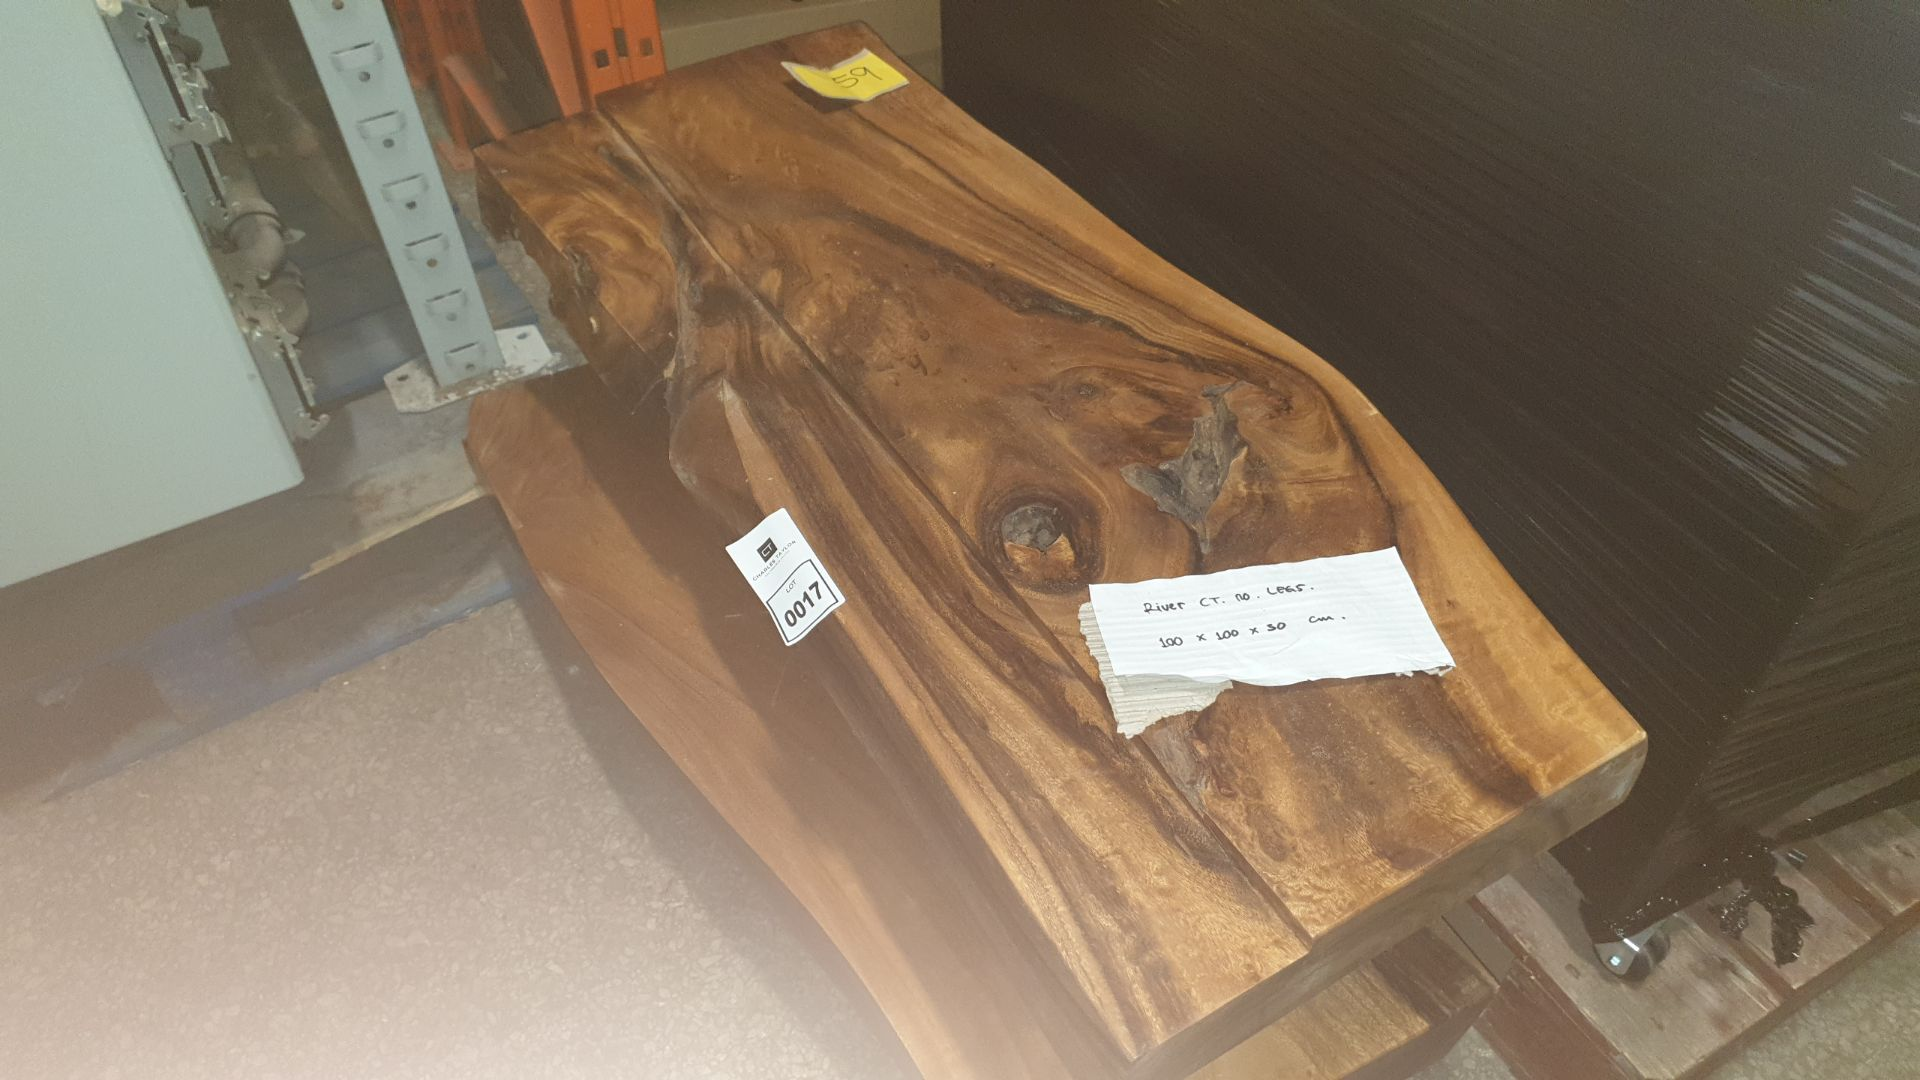 Lot 17 - BRAND NEW SOLID SUAR WOODEN RIVER COFFEE TABLE / NO LEGS 100 X 100 X 30 RRP £725